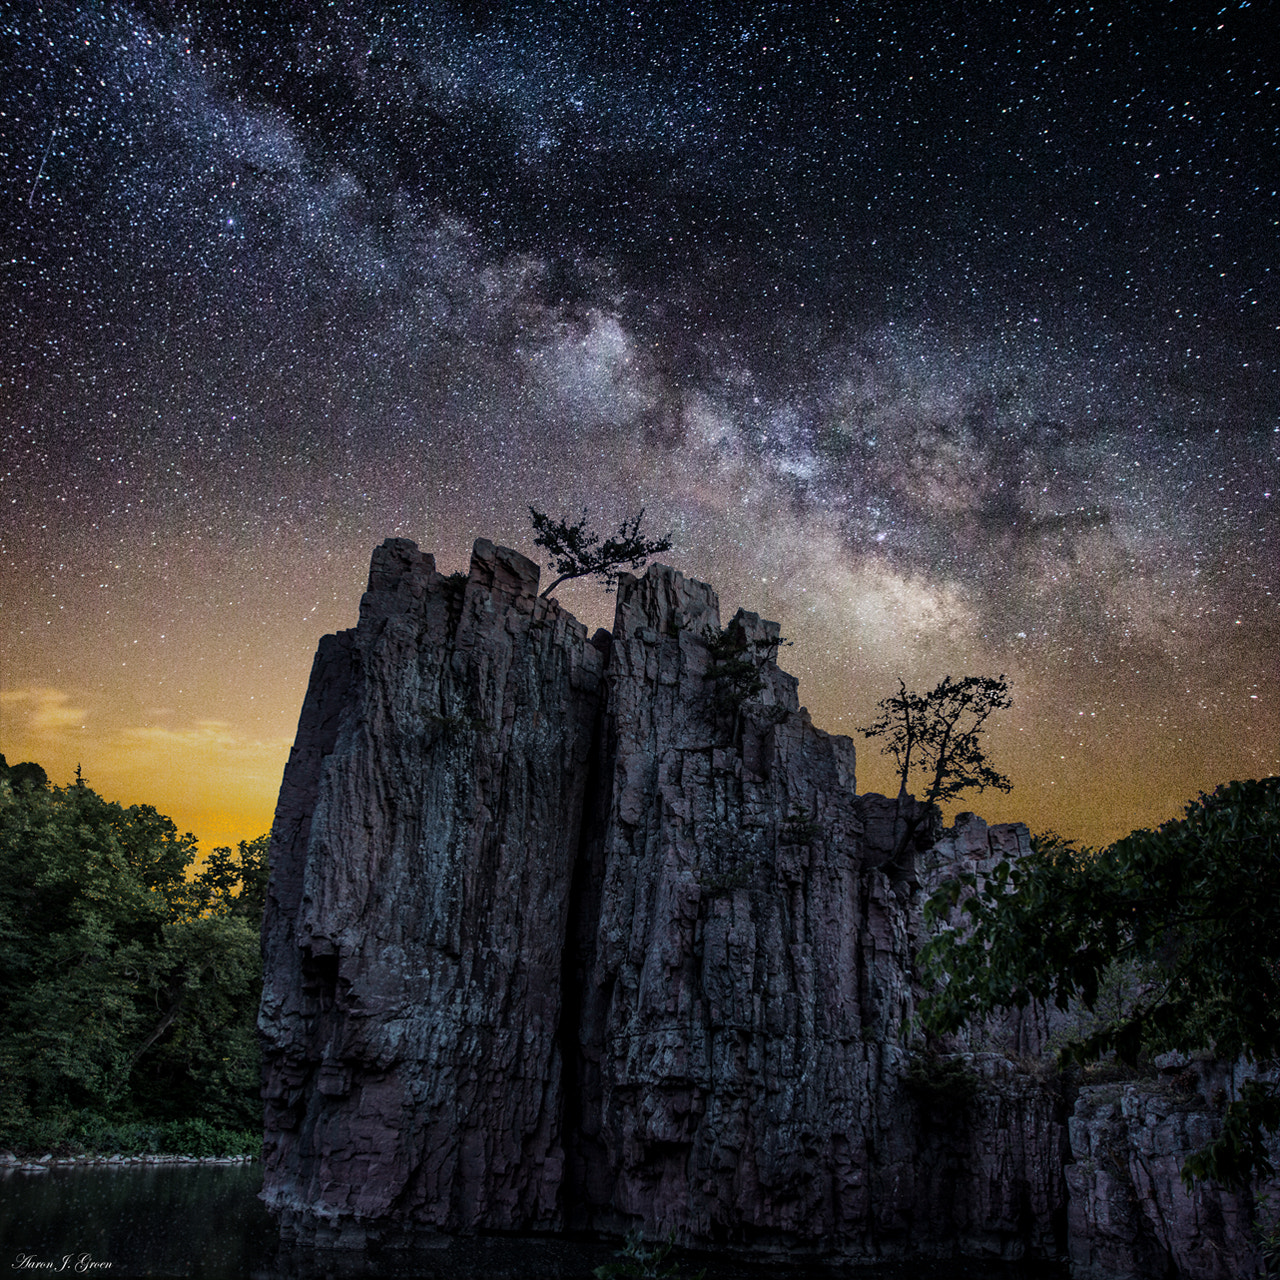 Photograph King and Queen Rock Milky Way by Aaron J. Groen on 500px